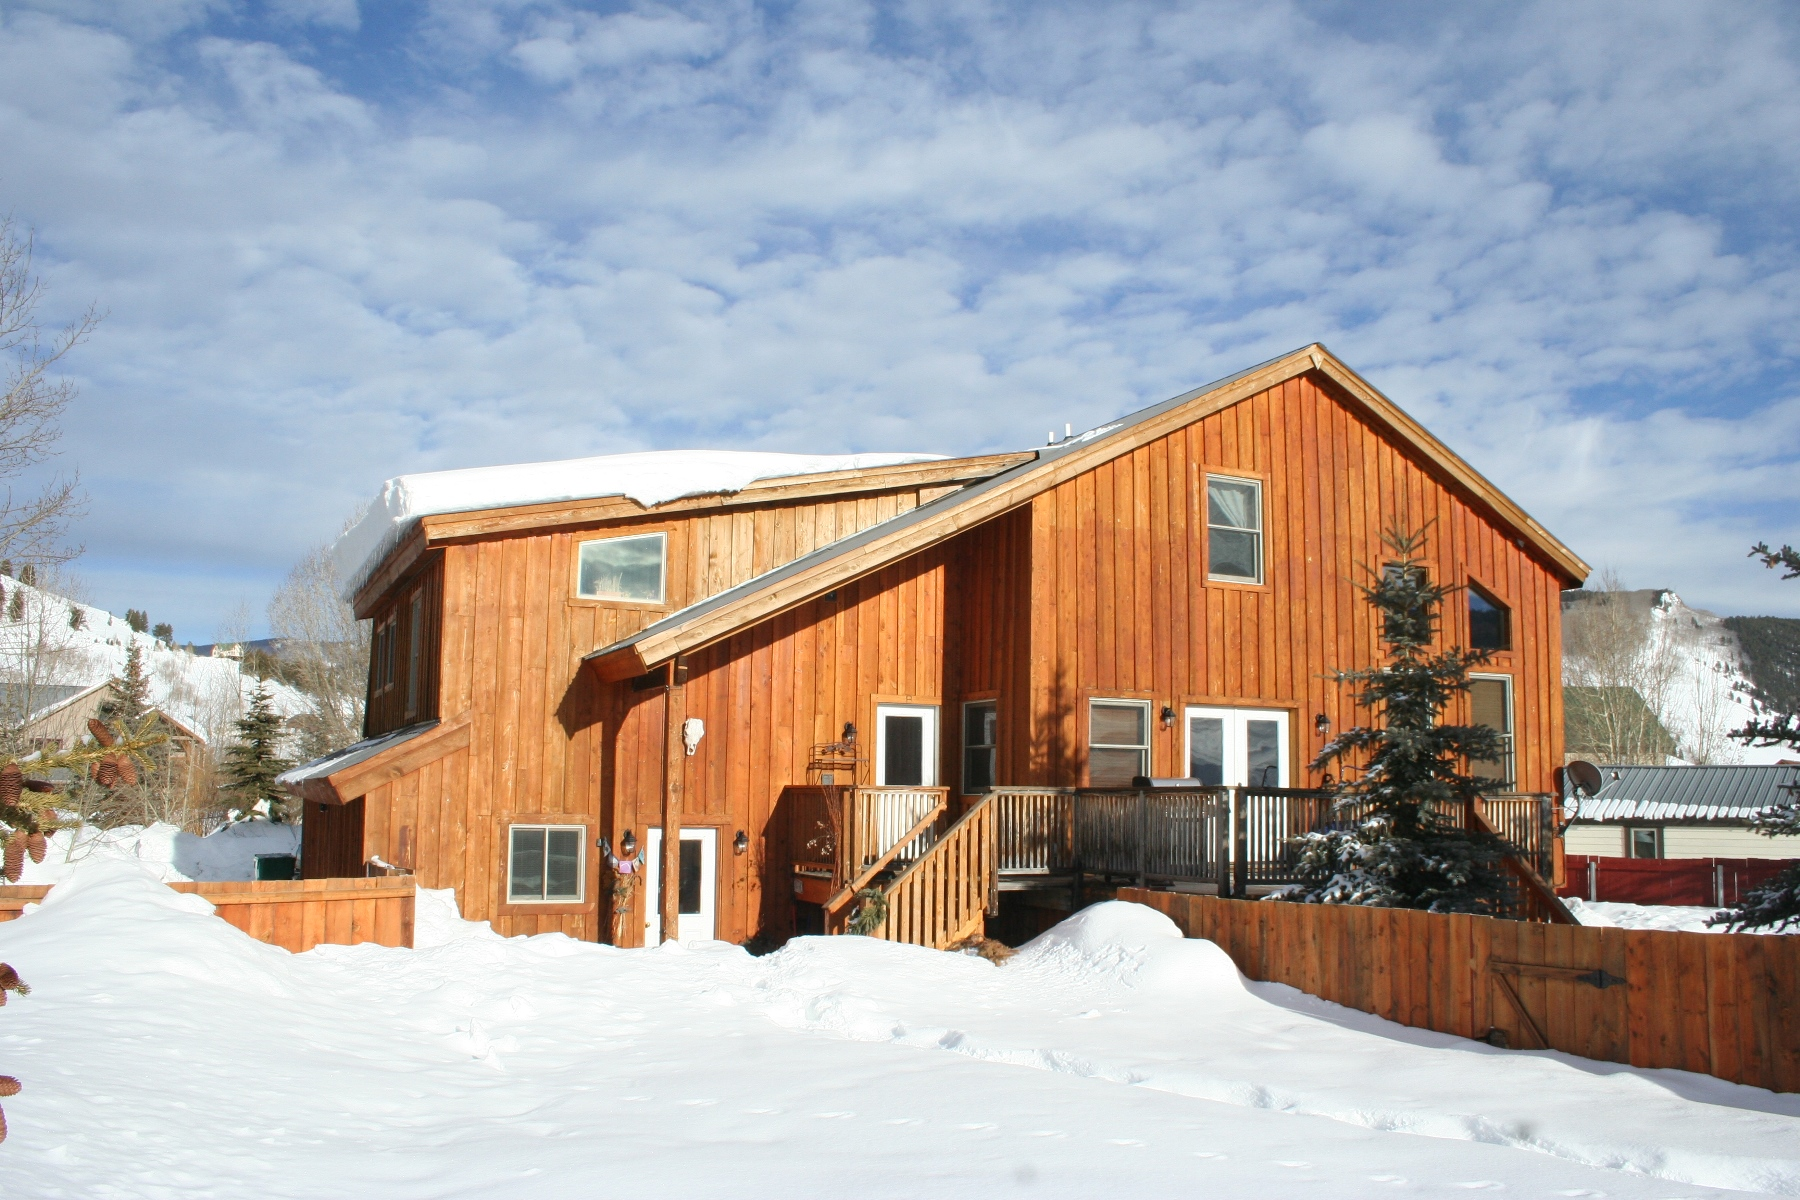 Single Family Home for Sale at Convenient Location 454 Teocalli Road Crested Butte, Colorado, 81224 United States